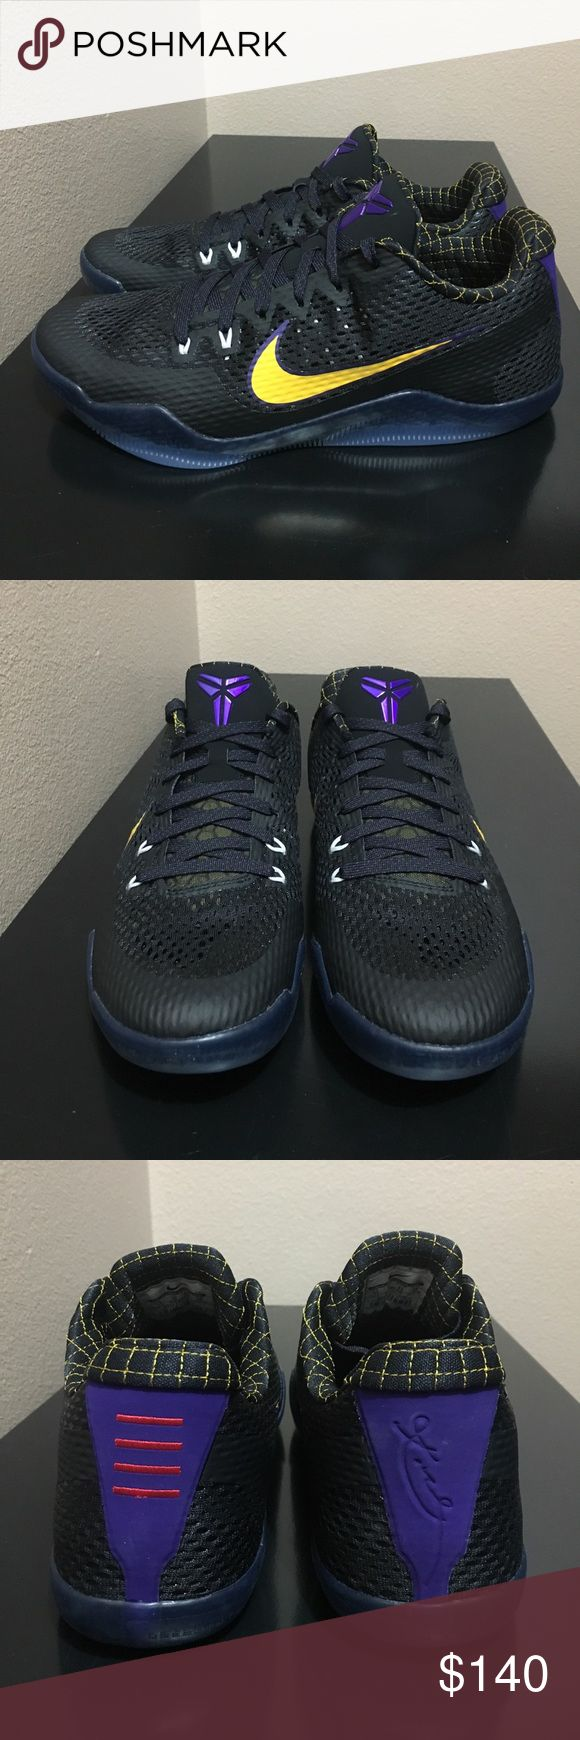 Nike Kobe XI Low Carpe Diem Brand new/Never worn. Brings original everything. 100% Authentic. Lightweight, great sole grip, and cushioning all around sock liner. Nike Shoes Sneakers